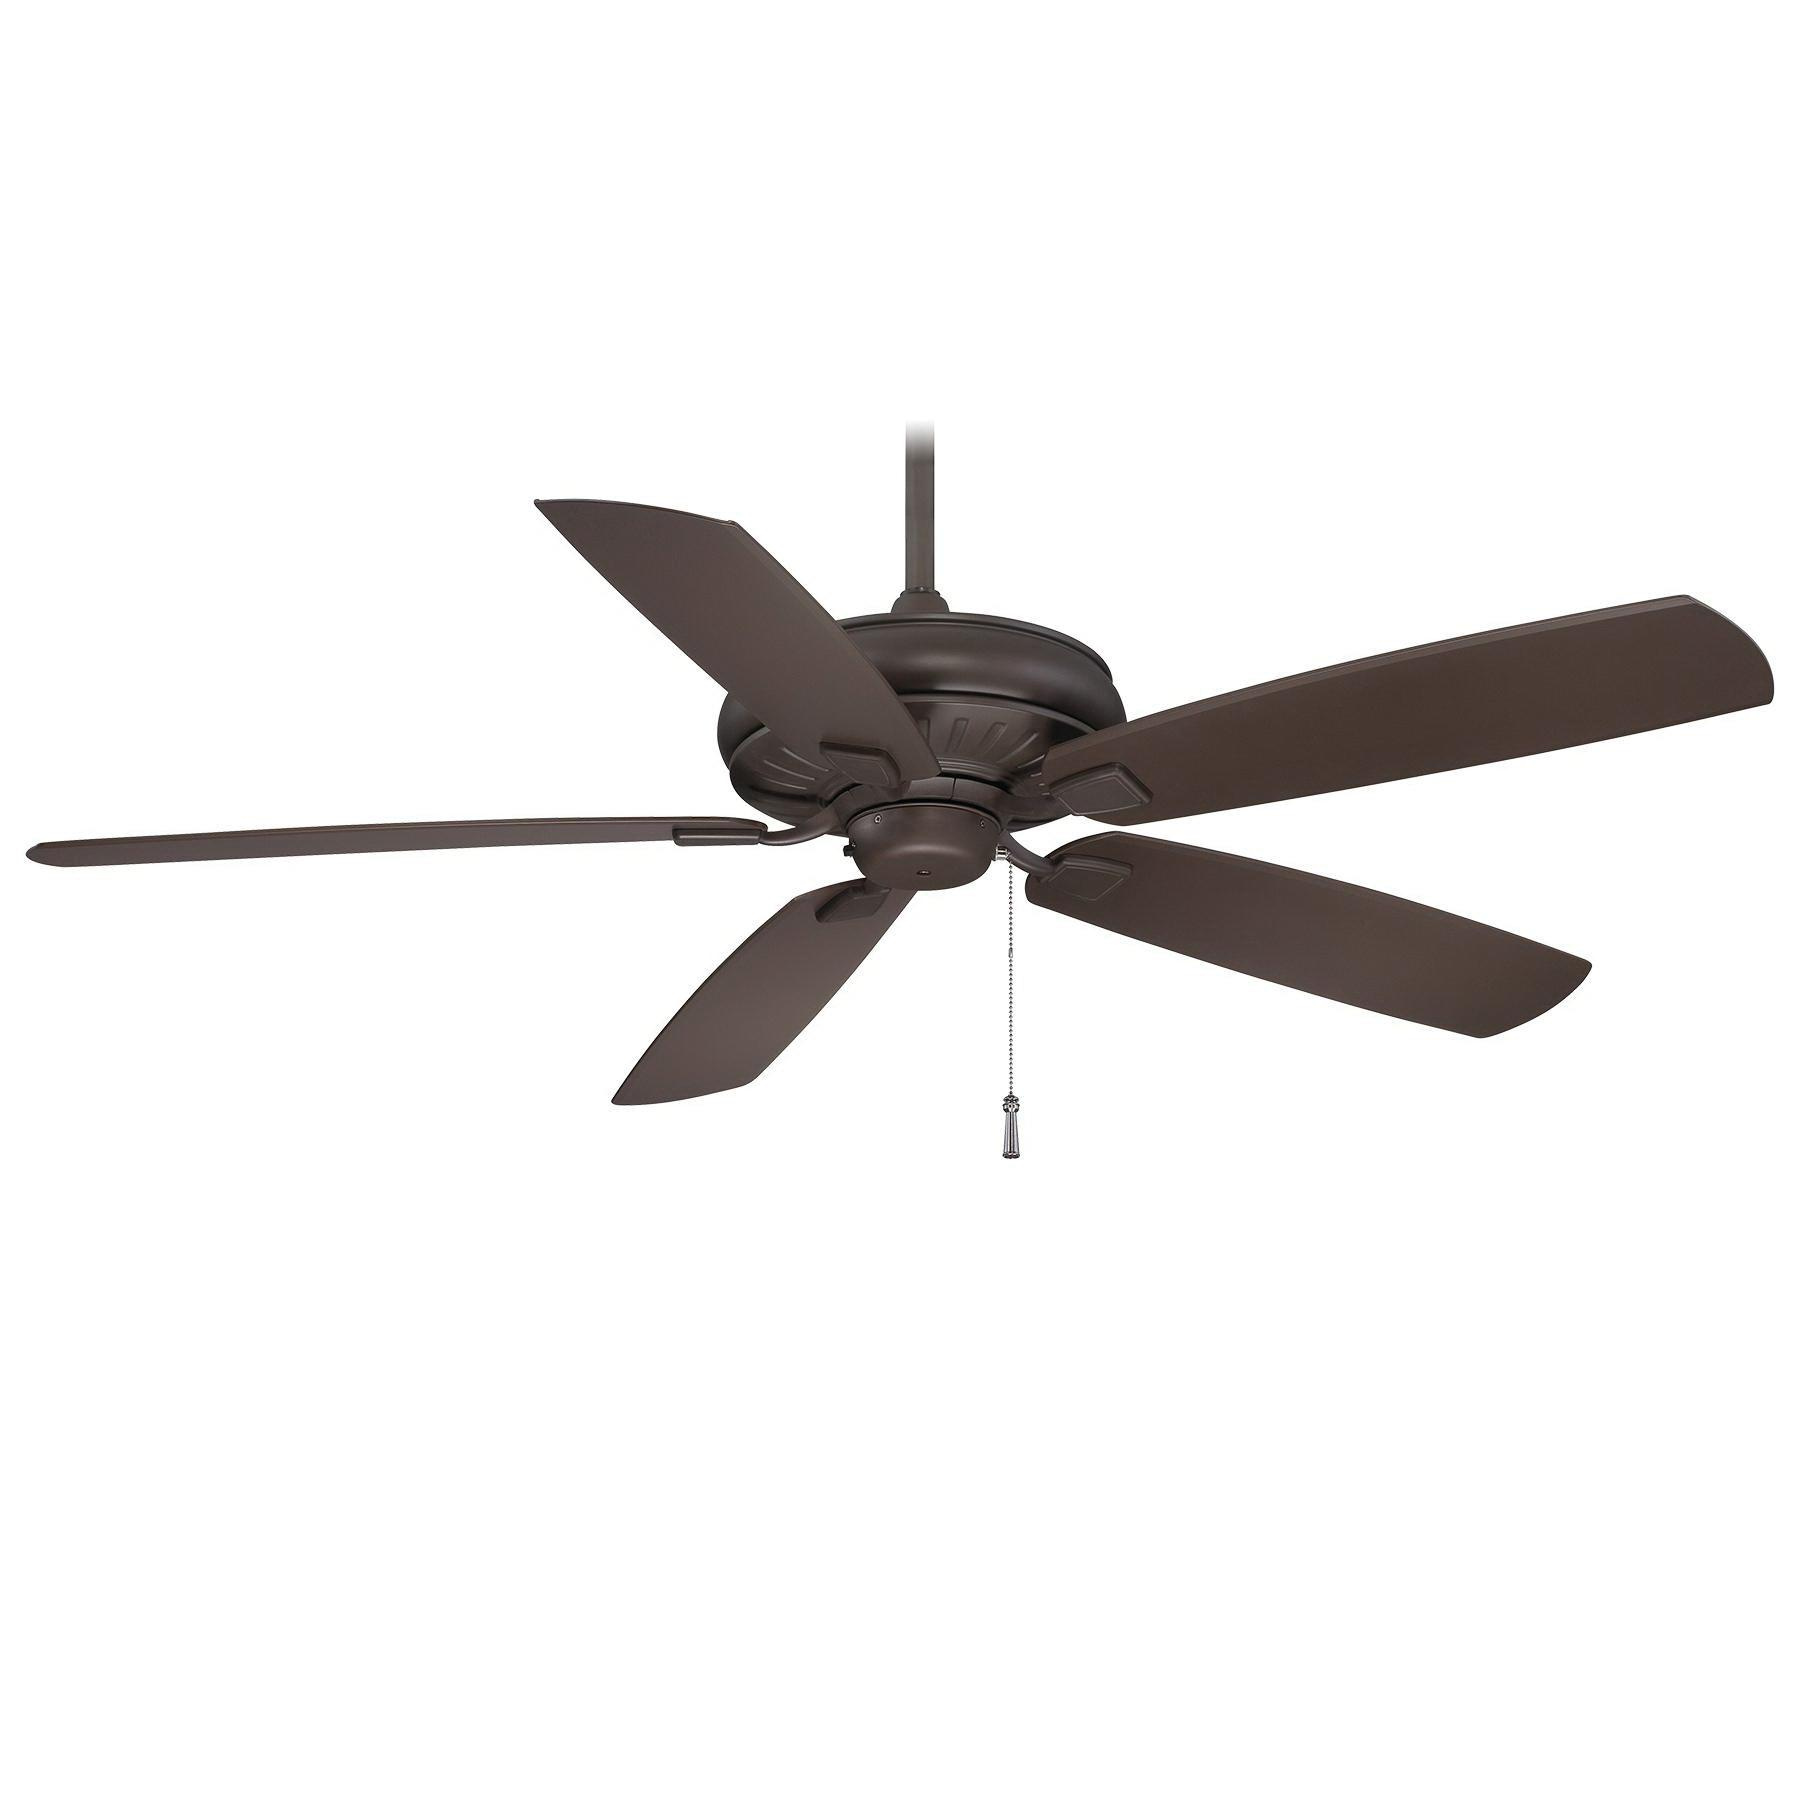 Minka aire f532 orb exterior ceiling fan 60 inch 5 blade oil rubbed minka aire f532 orb exterior ceiling fan 60 inch 5 blade oil rubbed bronze sunseeker aloadofball Choice Image